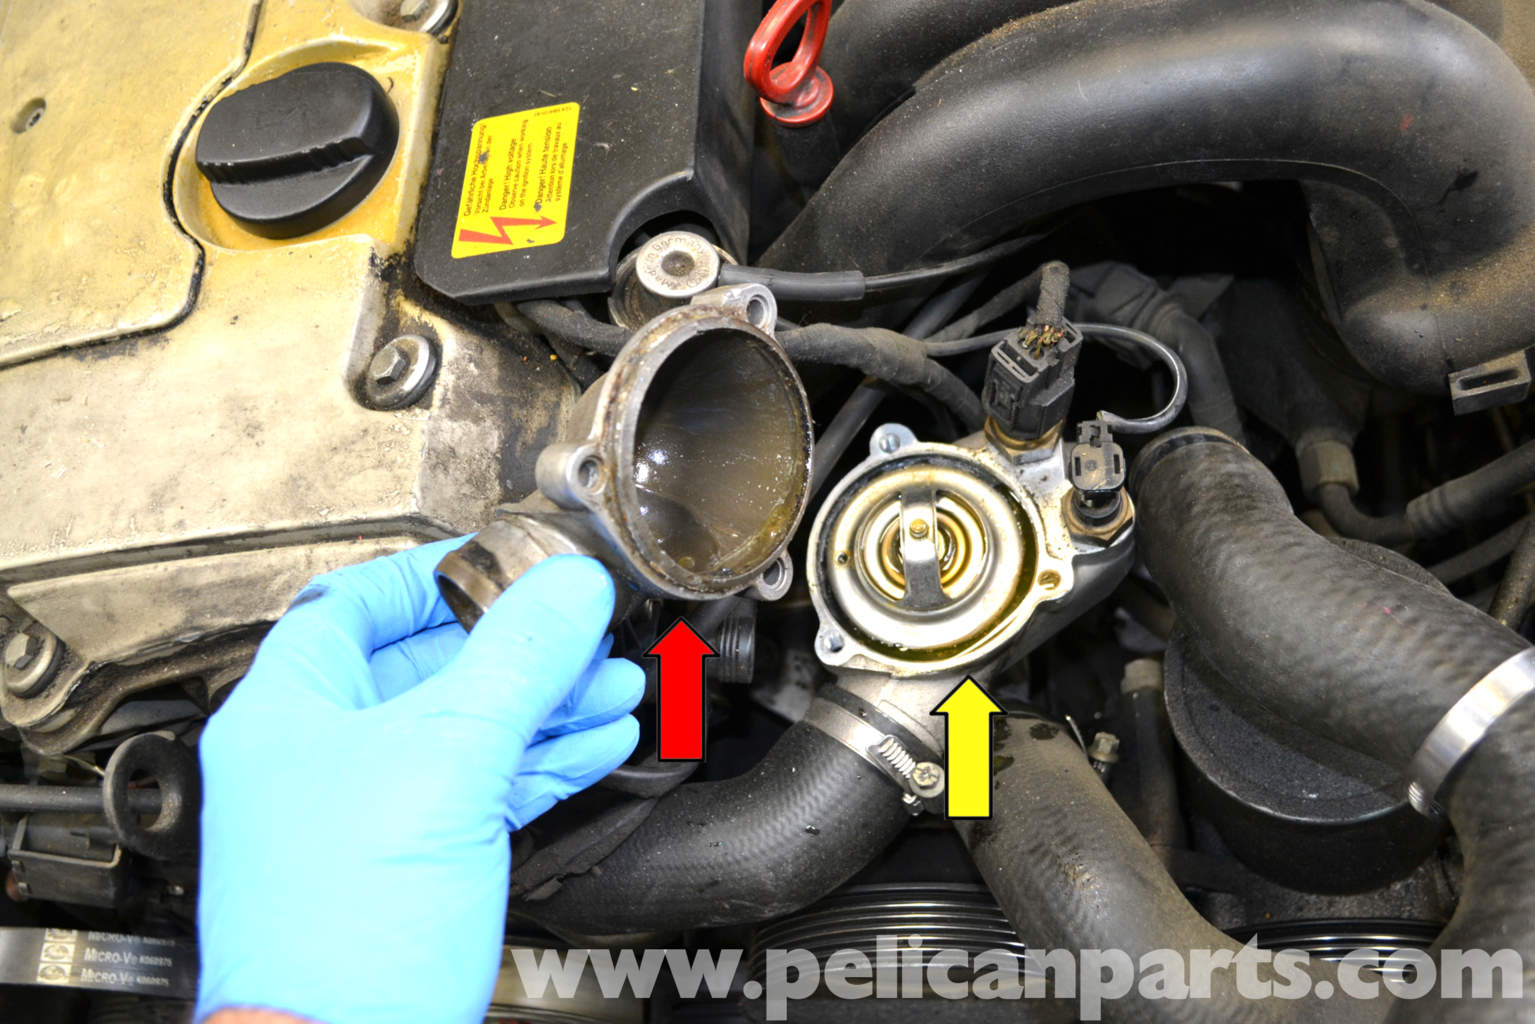 Service manual how to change thermostat on a 1989 for Mercedes benz thermostat